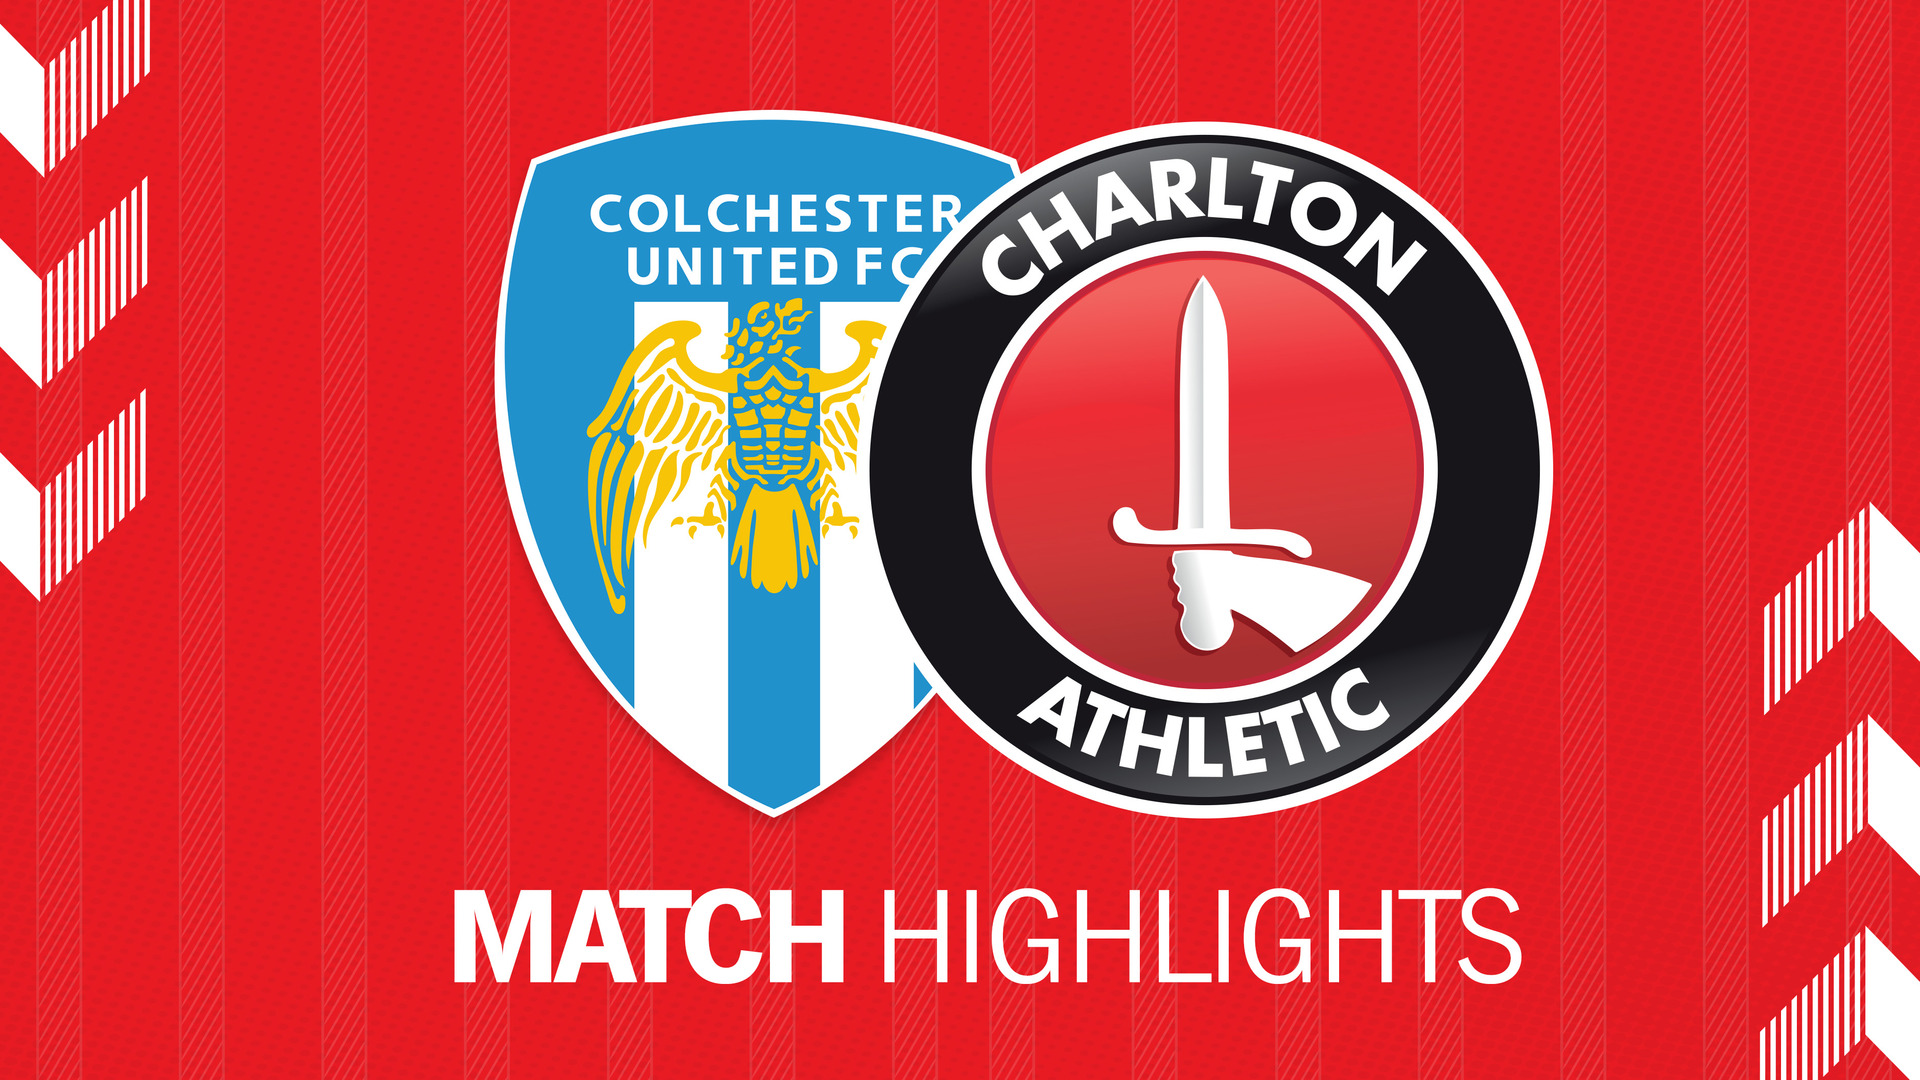 HIGHLIGHTS | Colchester United 1 Charlton 2 (July 2019)